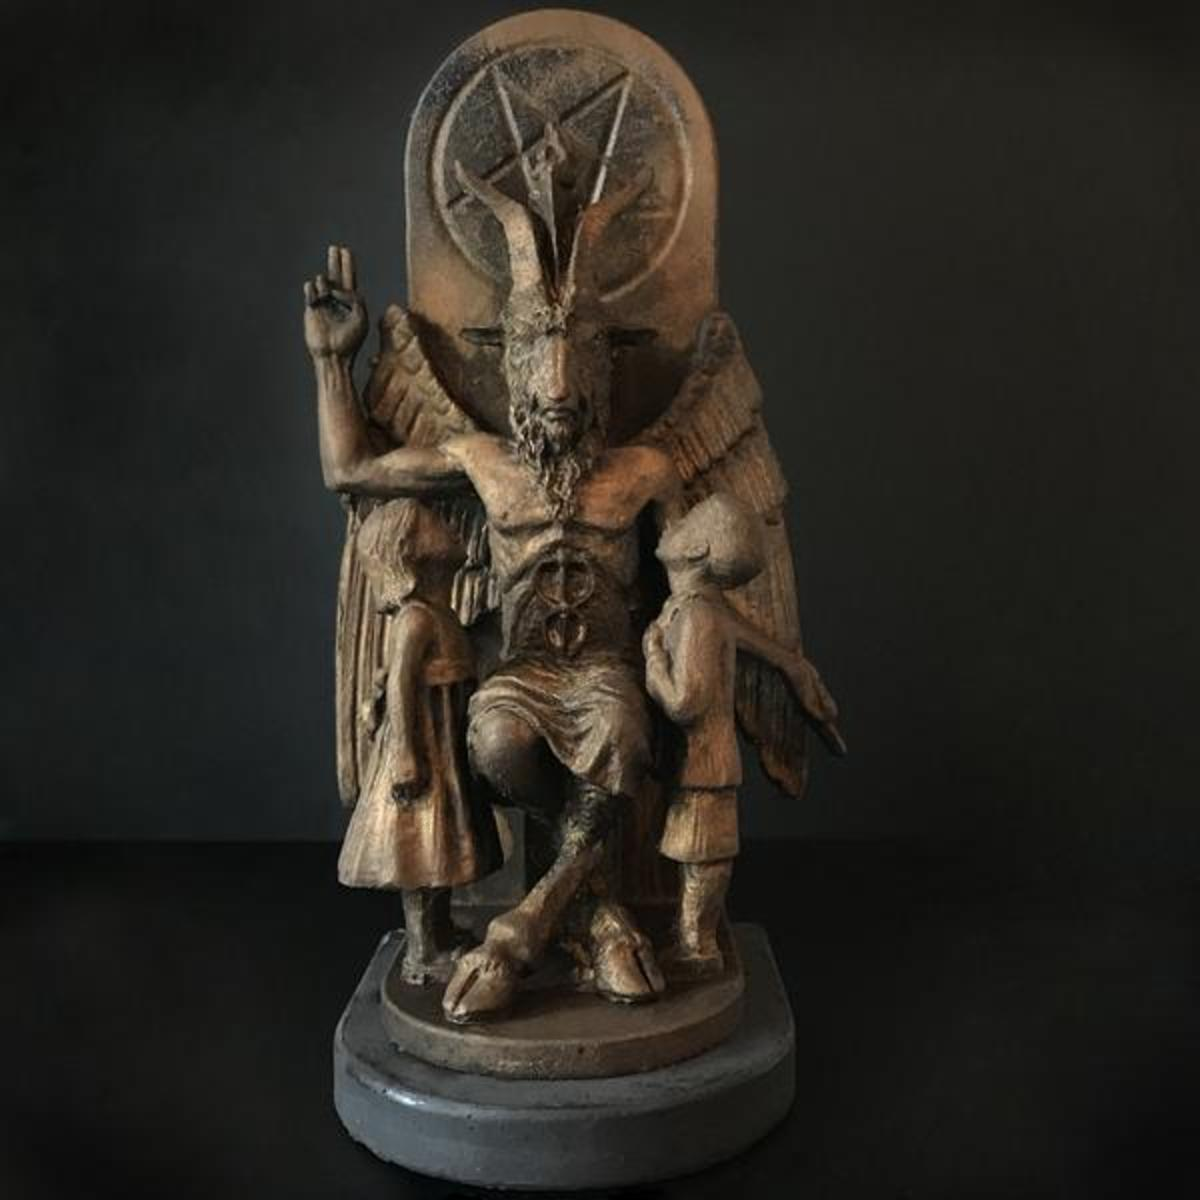 The statue of Baphomet features two young children seeking knowledge..